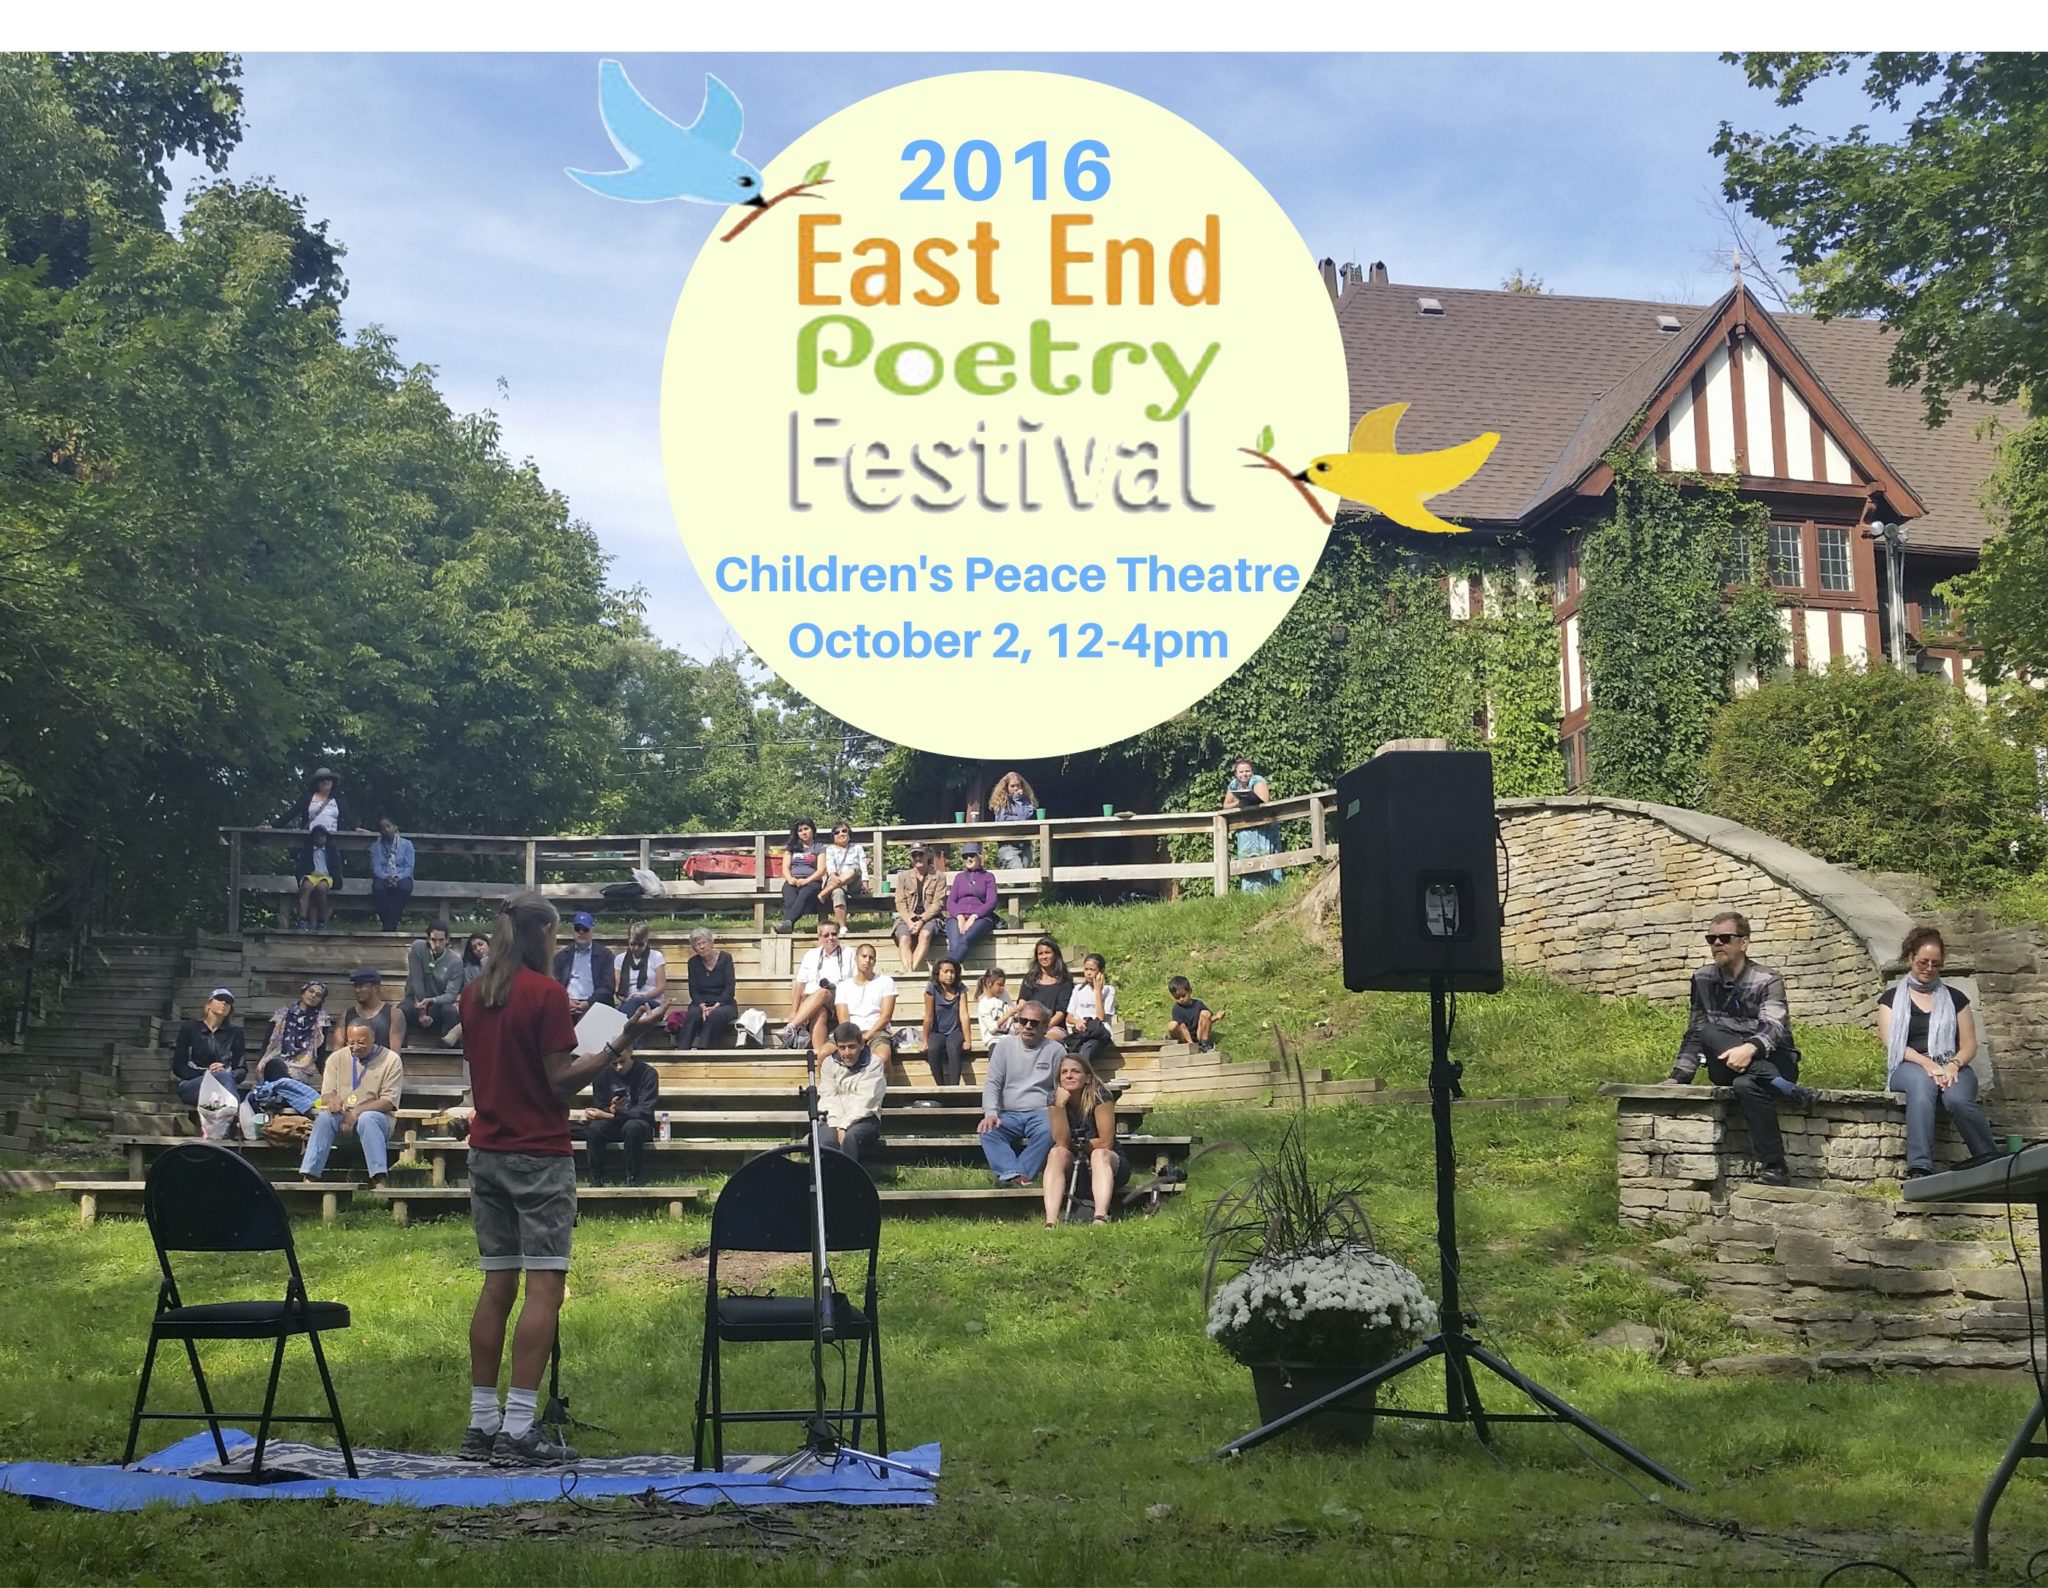 2016 East End Poetry Festival